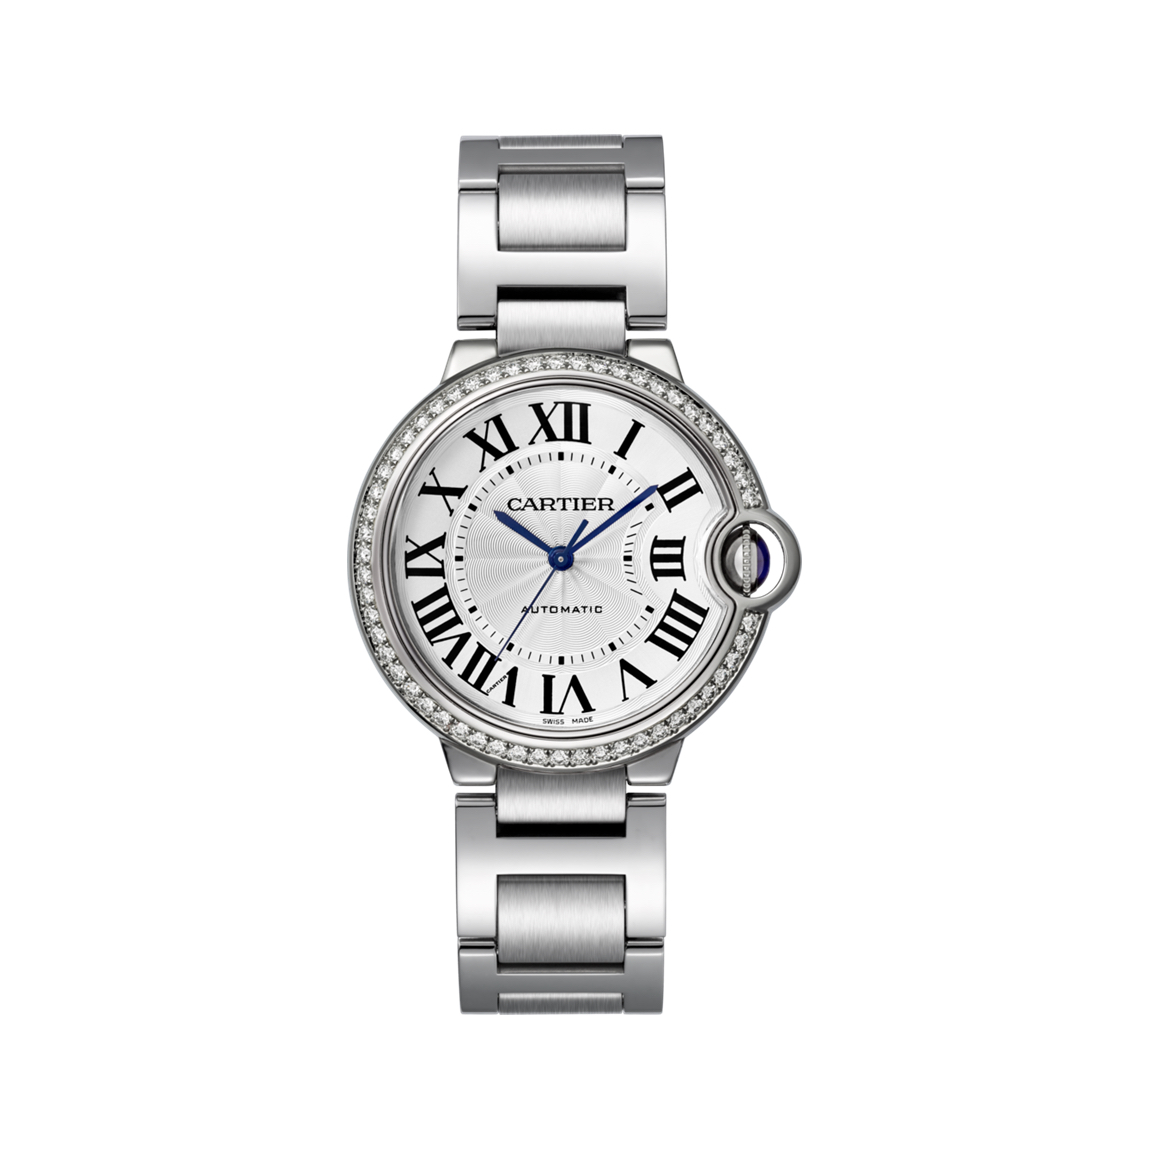 w4bb0017 Cartier Ballong Bleu ladies watch in steel with diamond bezel Marshall Pierce & Company Chicago